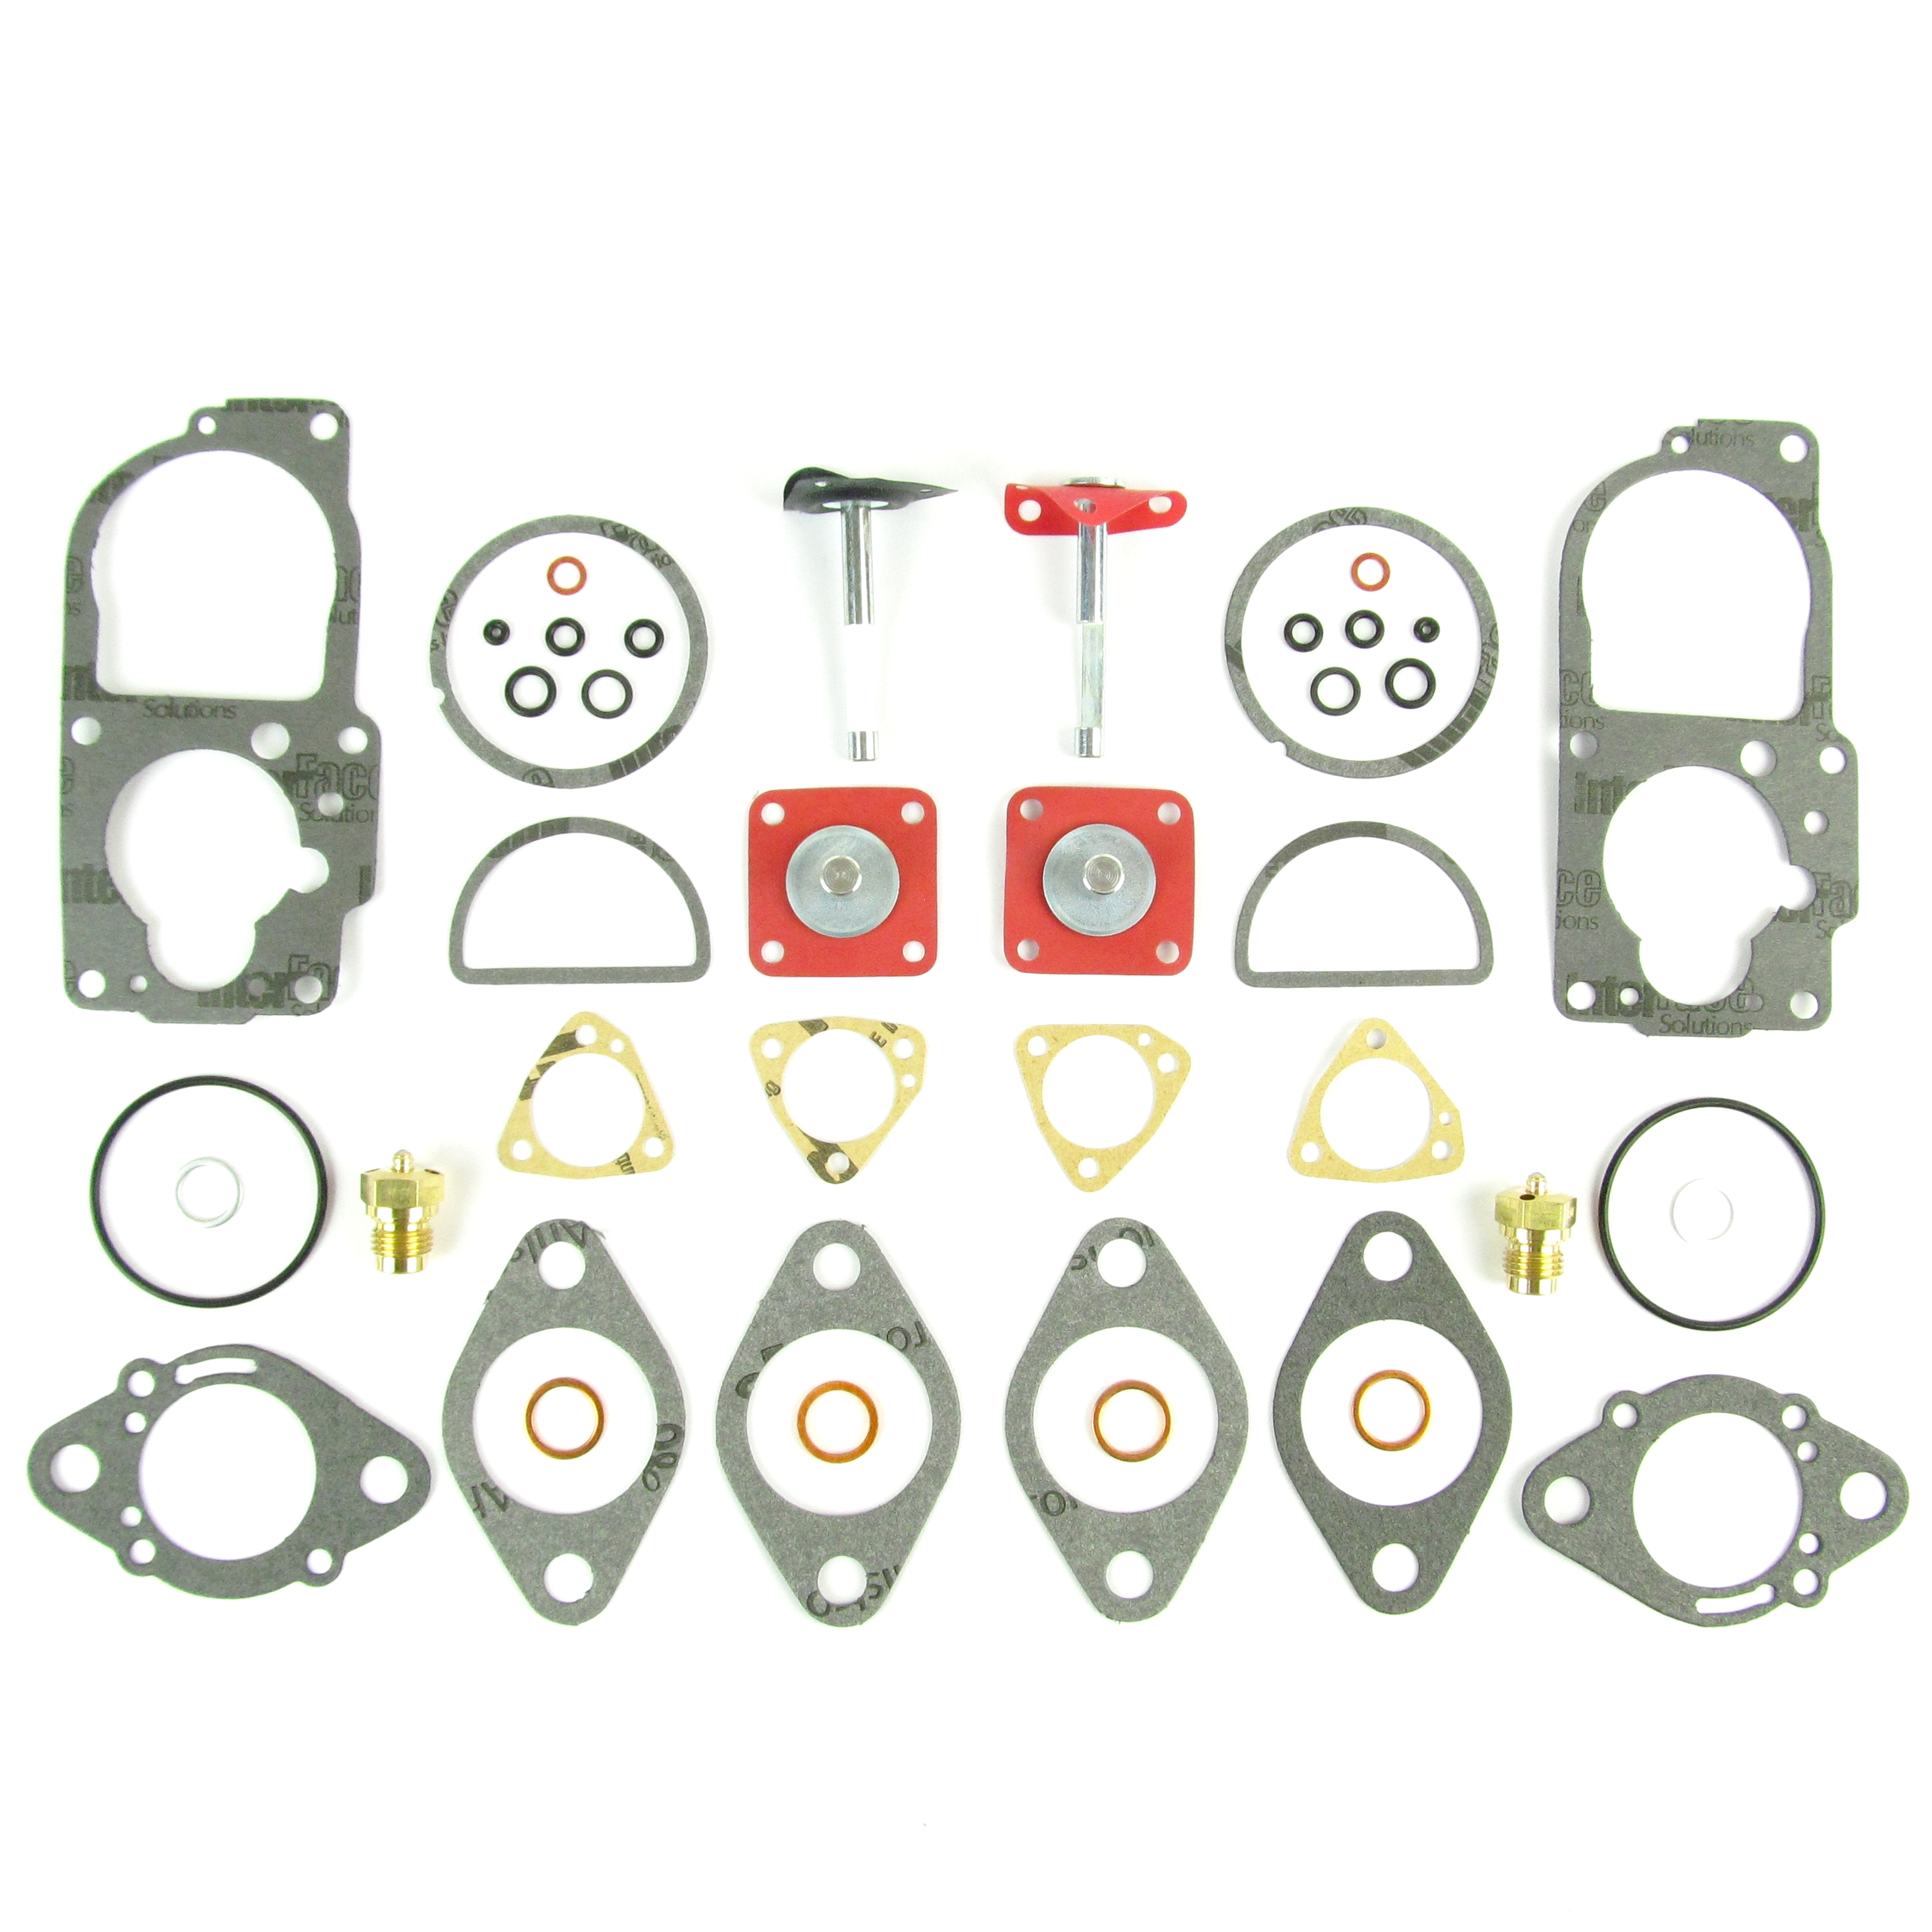 SOLEX 34 PDSIT CARBURETTORI SERVICE / GASKET KIT VW ​​1.7 / 1.8 / 2.0 ENGINE (PARIS)